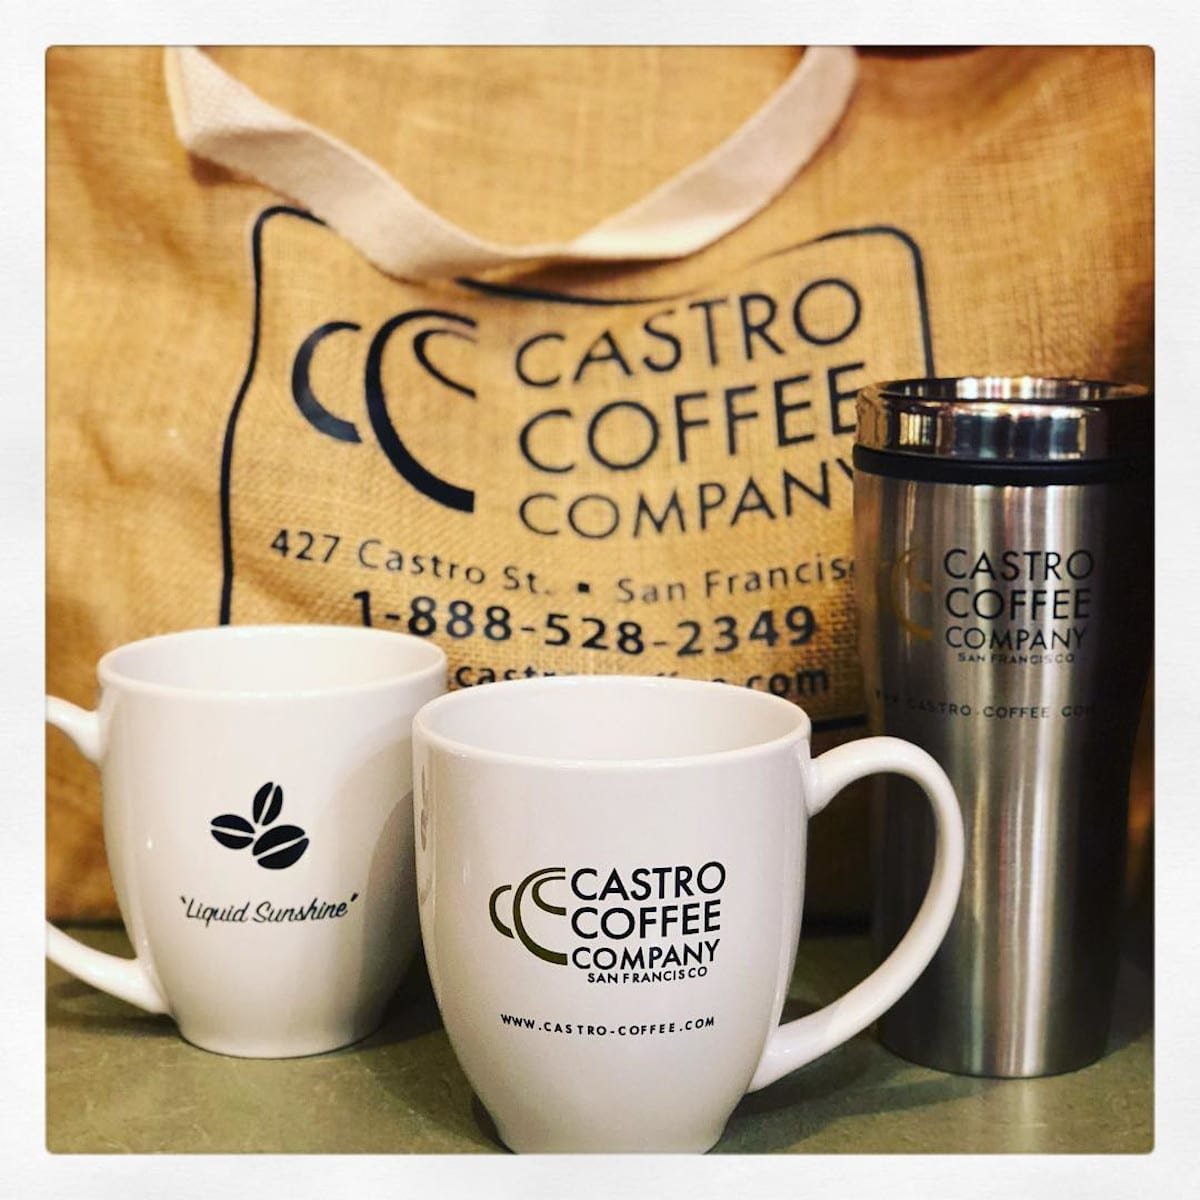 Castro Coffee Company